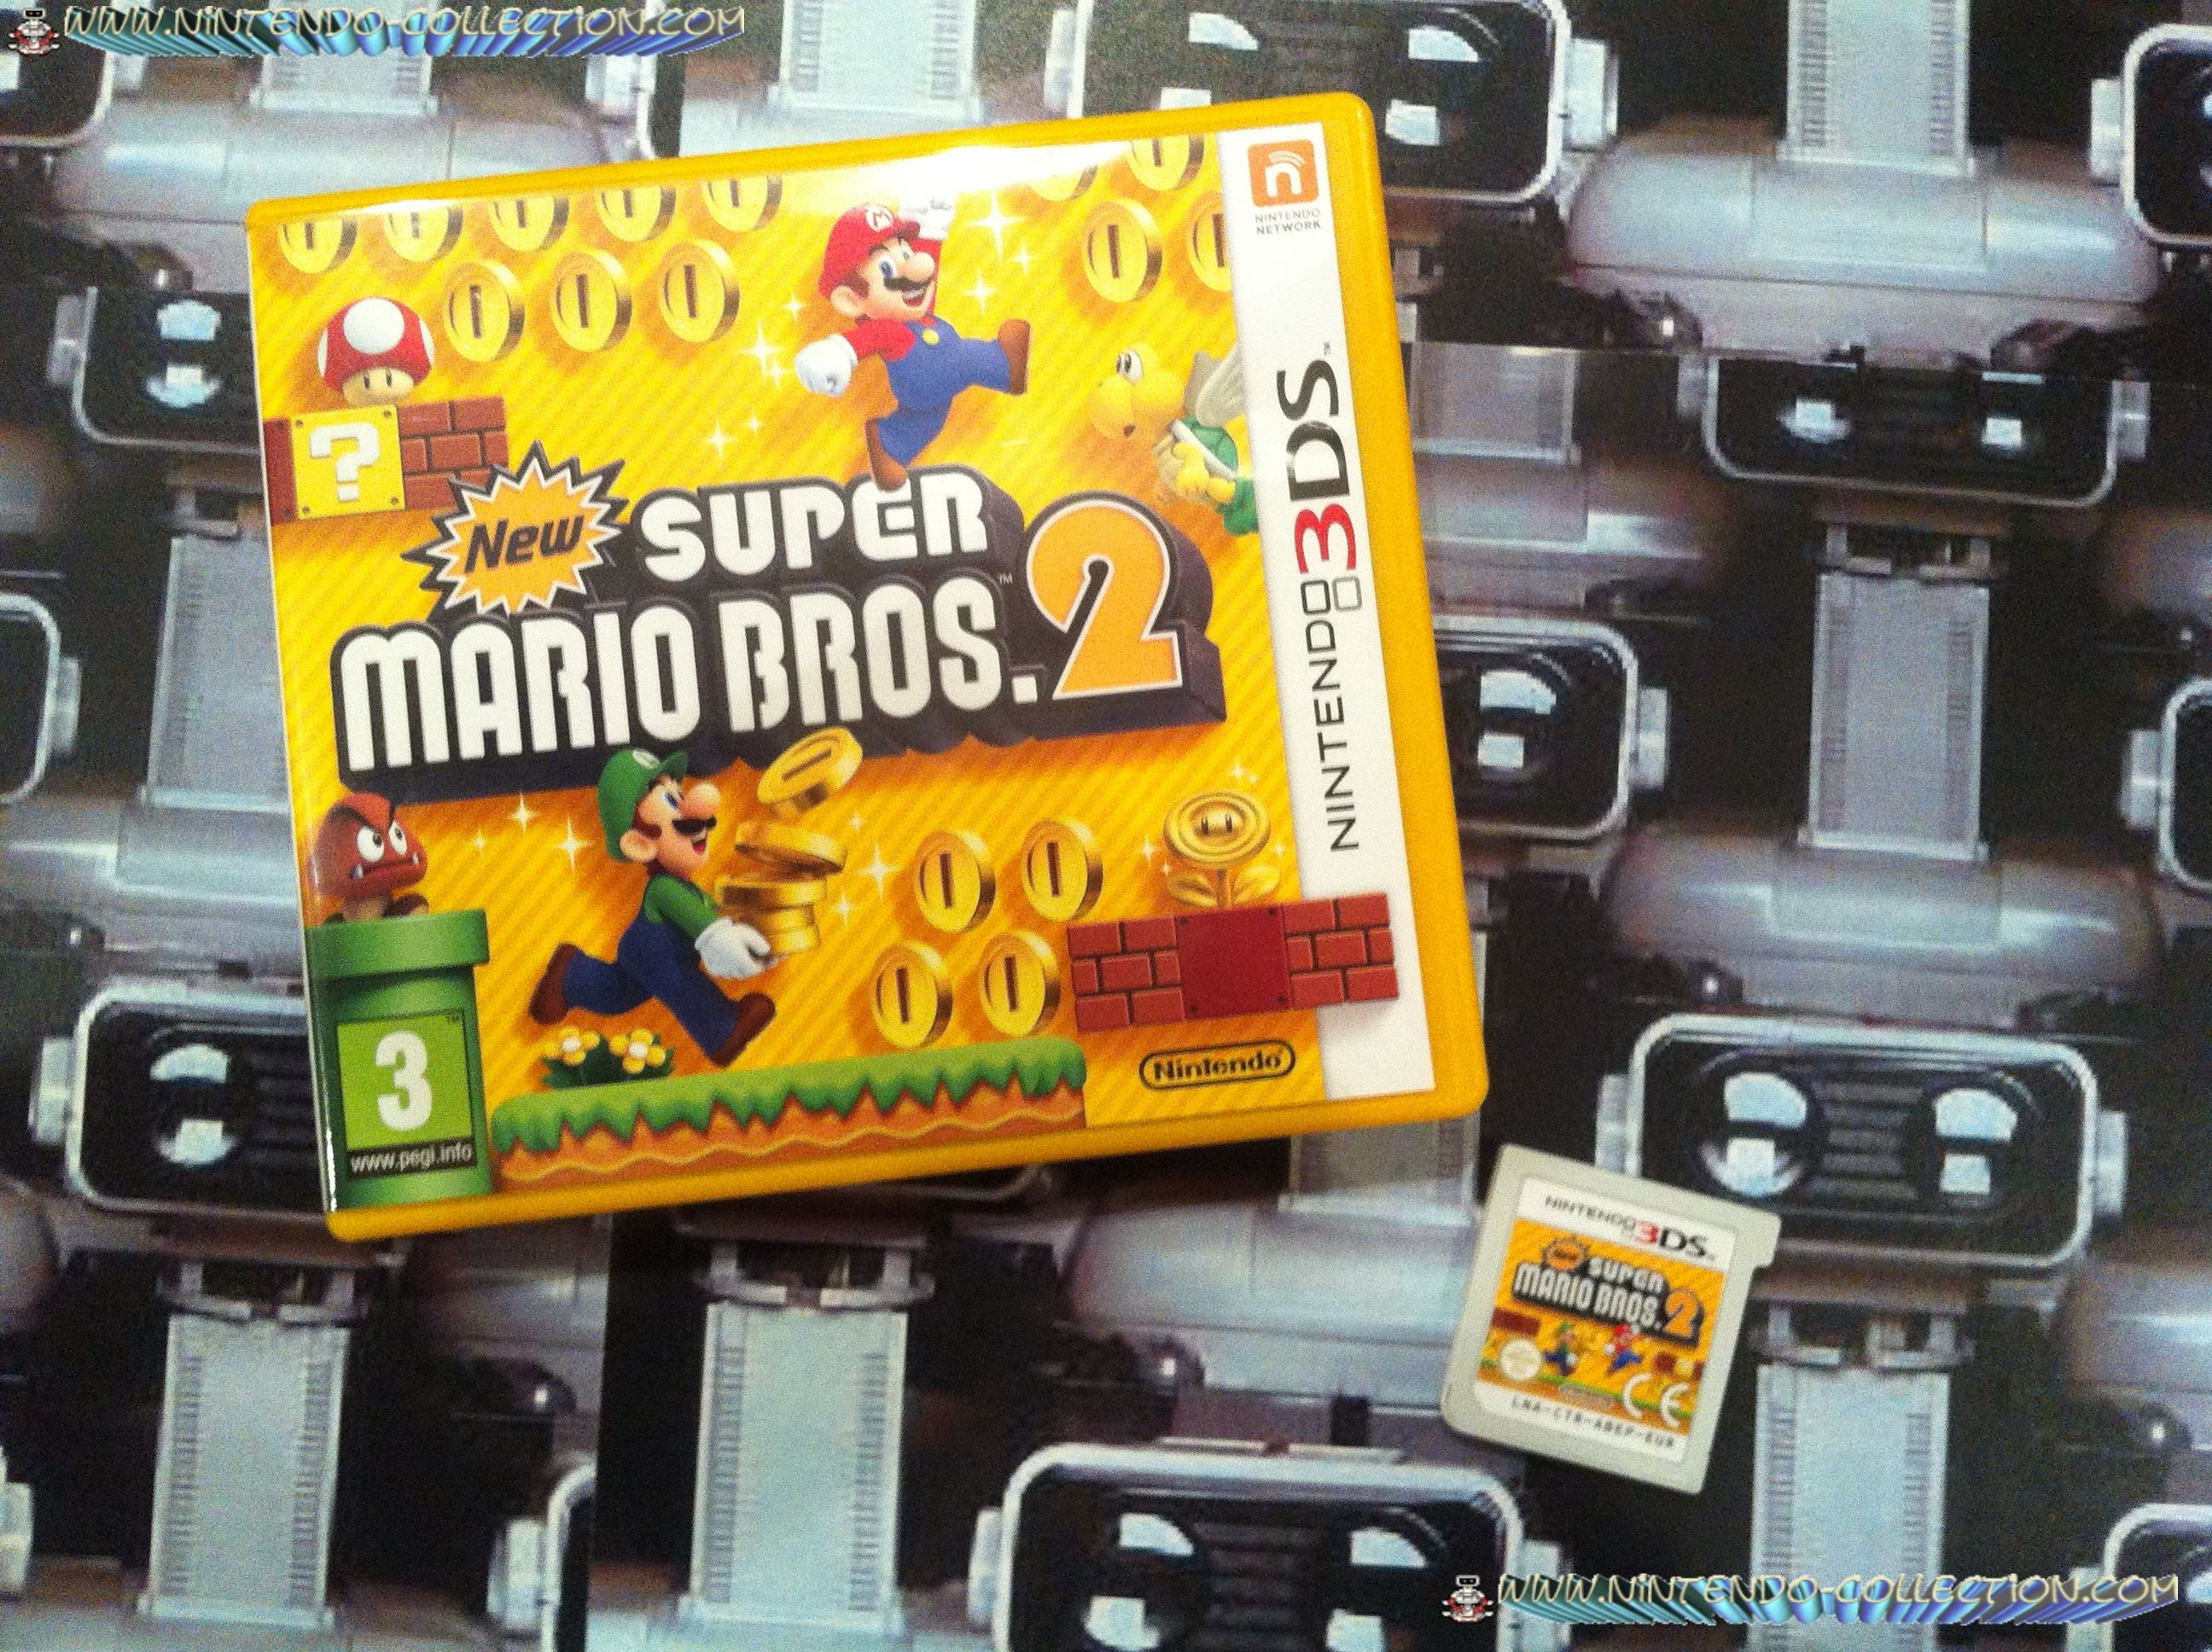 www.nintendo-collection.com - New super Mario Bros 2 - Nintendo 3DS